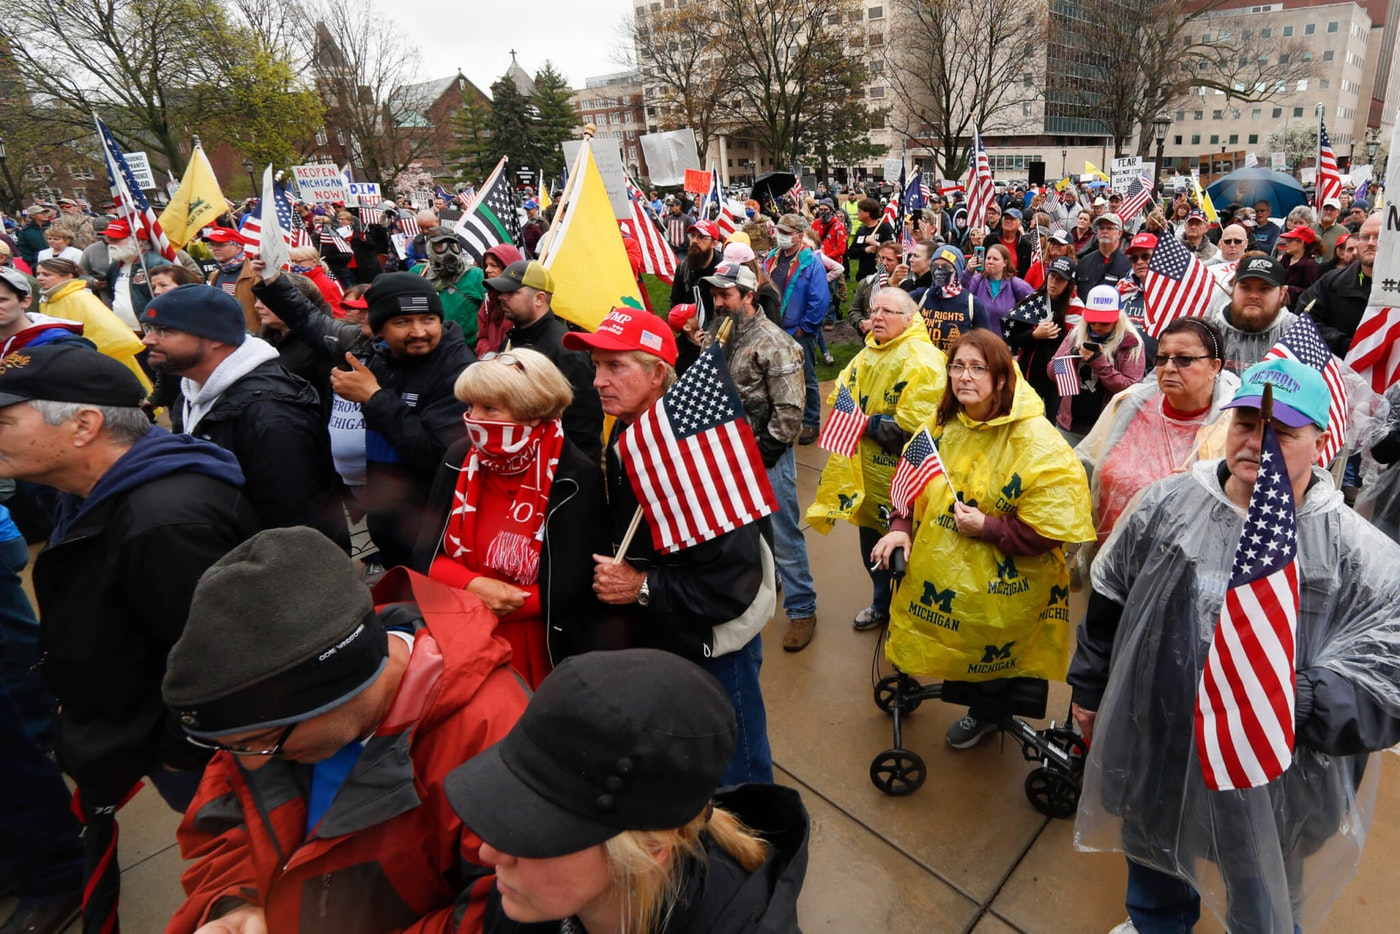 Protesters rally at the State Capitol in Lansing, Mich., Thursday, April 30, 2020. Hoisting American flags and handmade signs, protesters returned to the state Capitol to denounce Gov. Gretchen Whitmer's stay-home order and business restrictions due to COVID-19 while lawmakers met to consider extending her emergency declaration hours before it expires.. (AP Photo/Paul Sancya)